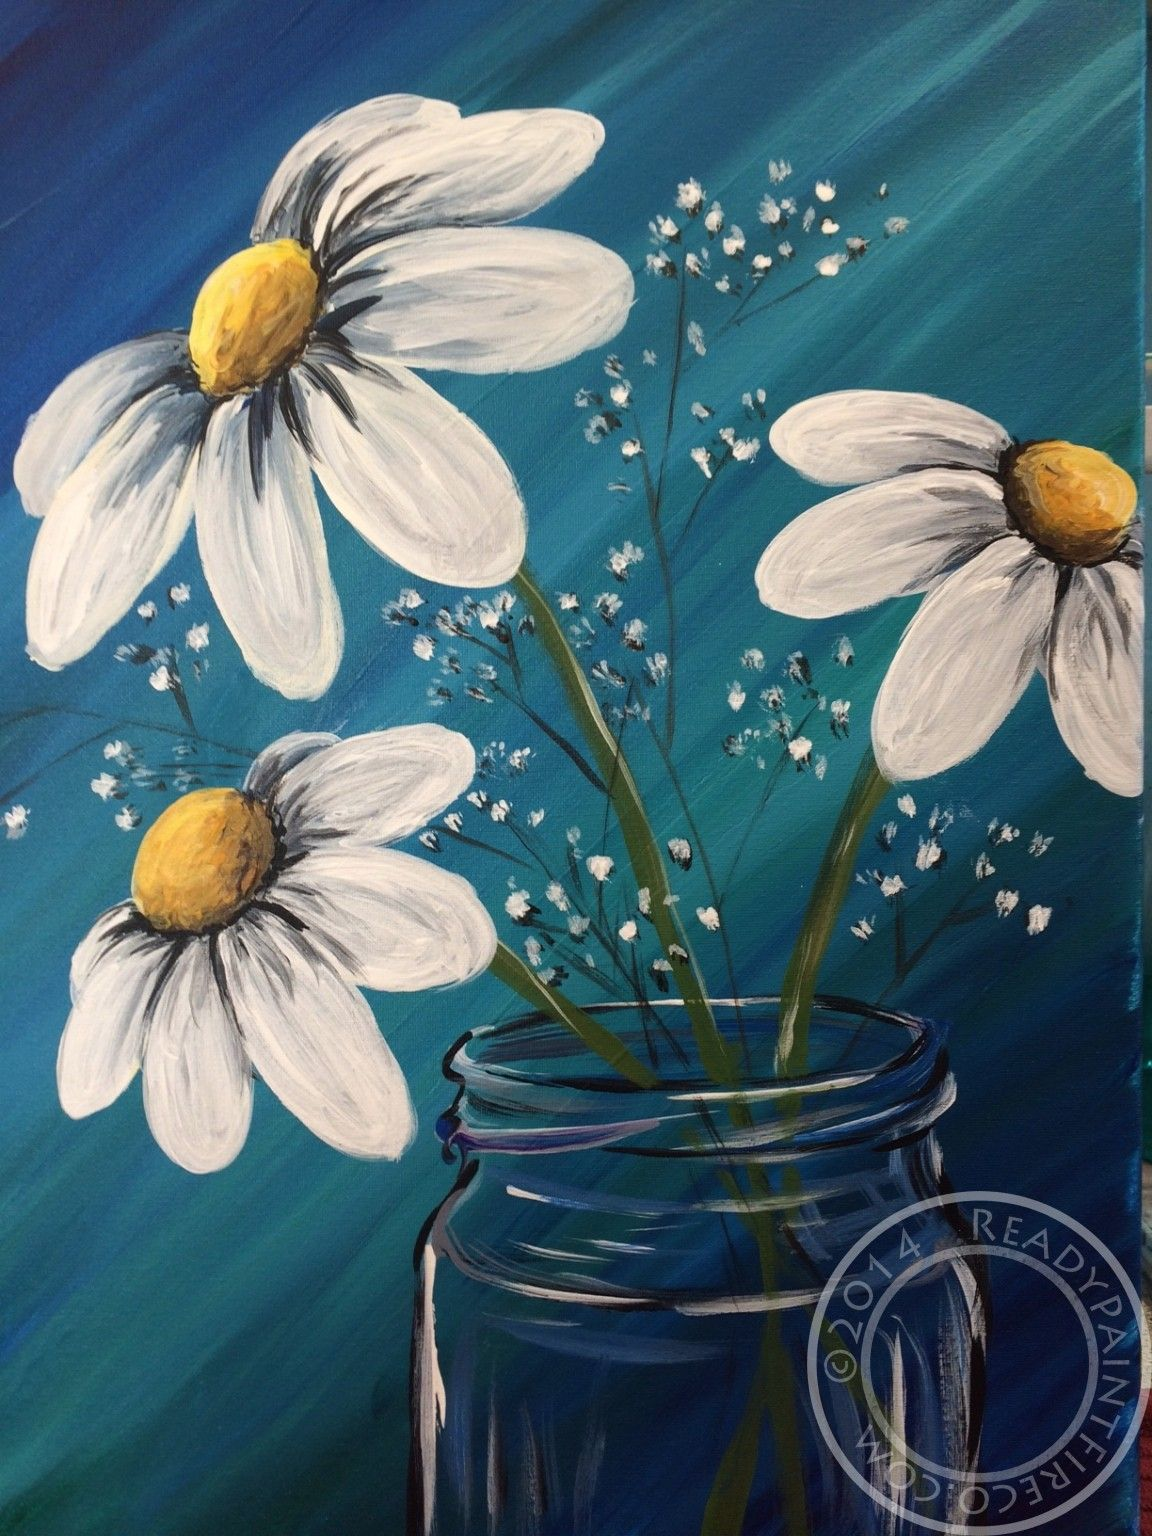 Upcoming events canvas painting nights open studio for canvas craft dhlflorist Image collections